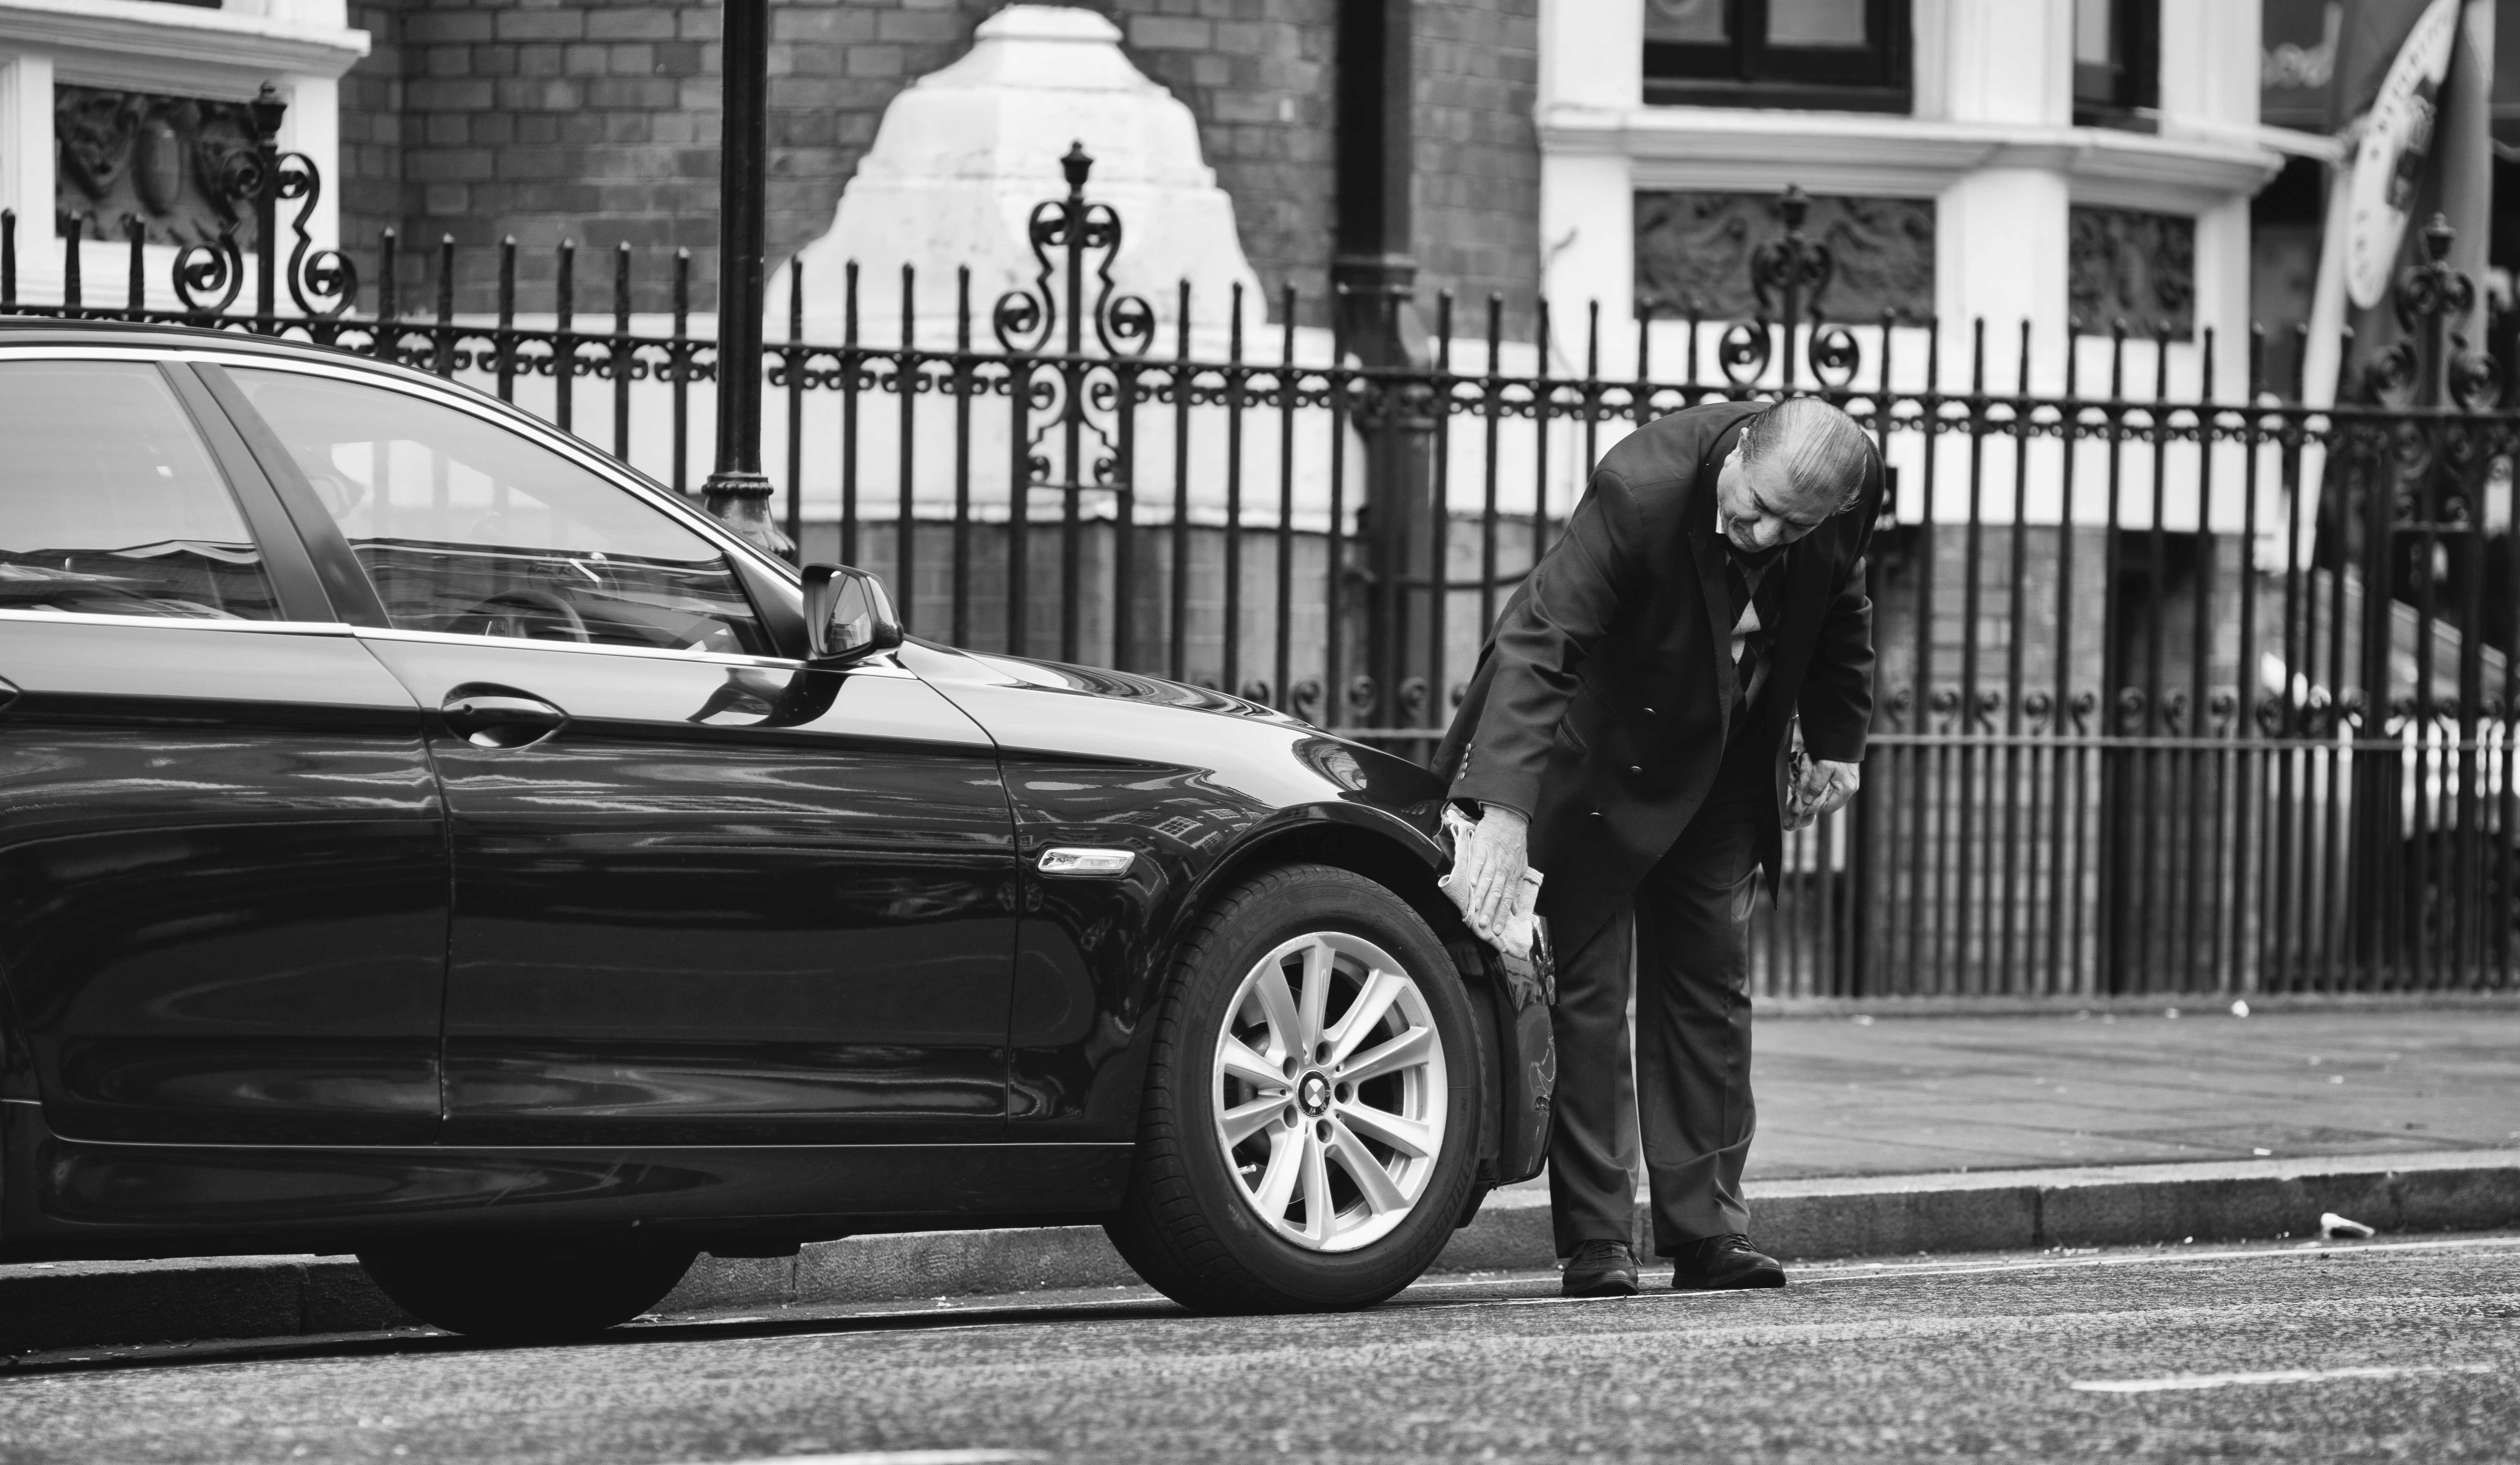 Keeping your shared car clean and tidy – tips for Owners